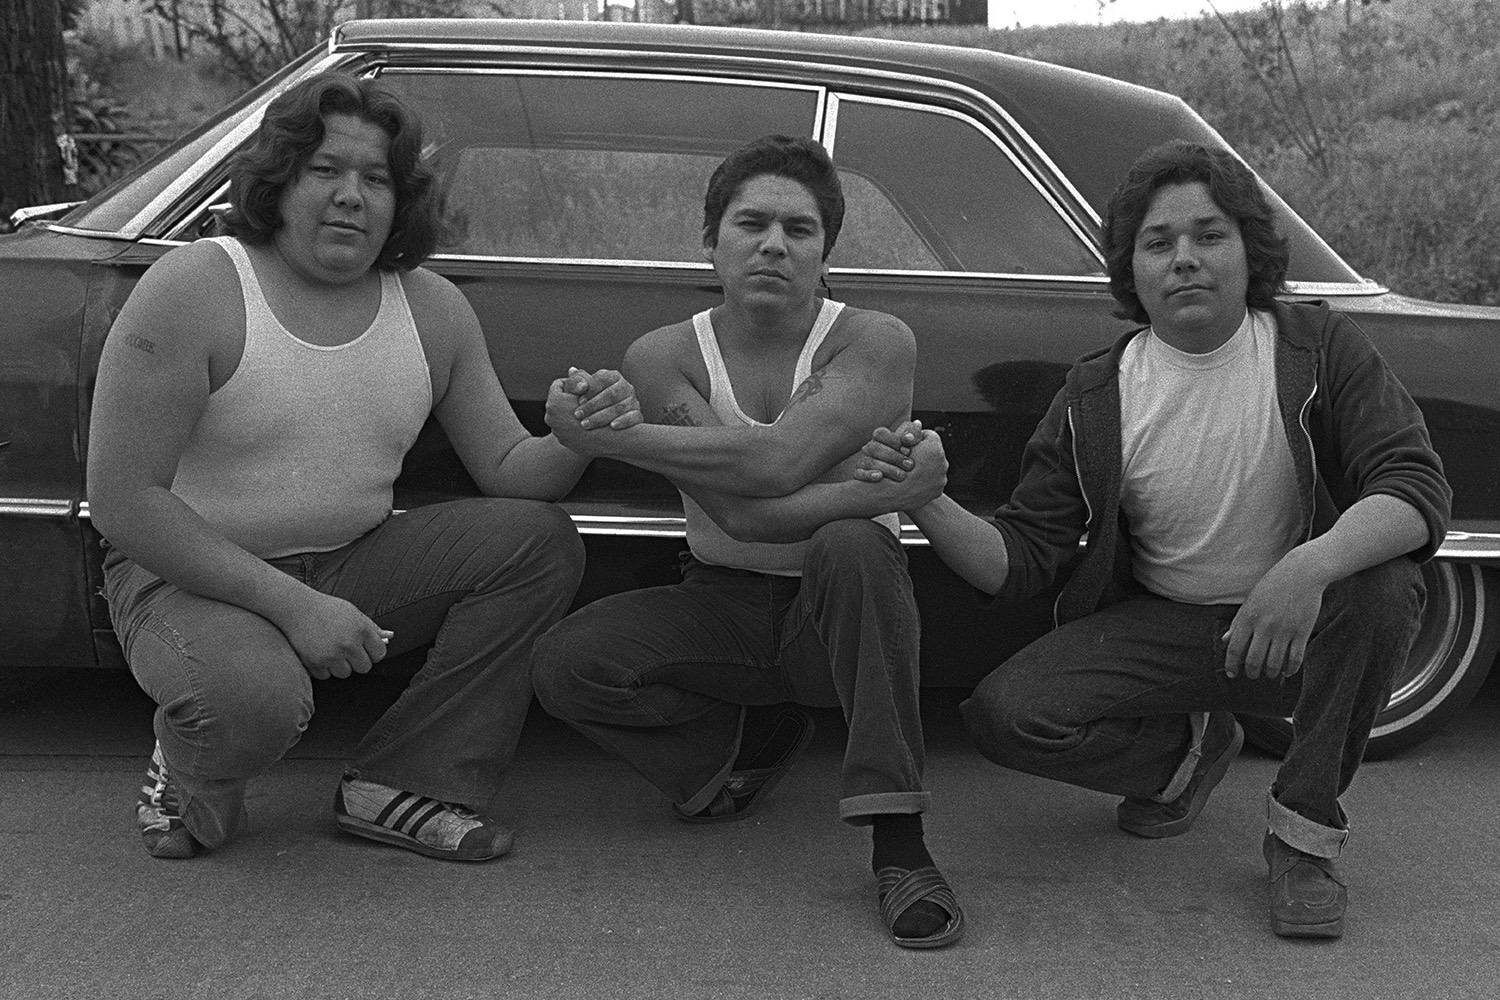 Down and out in east LA: vintage shots of Chicano life